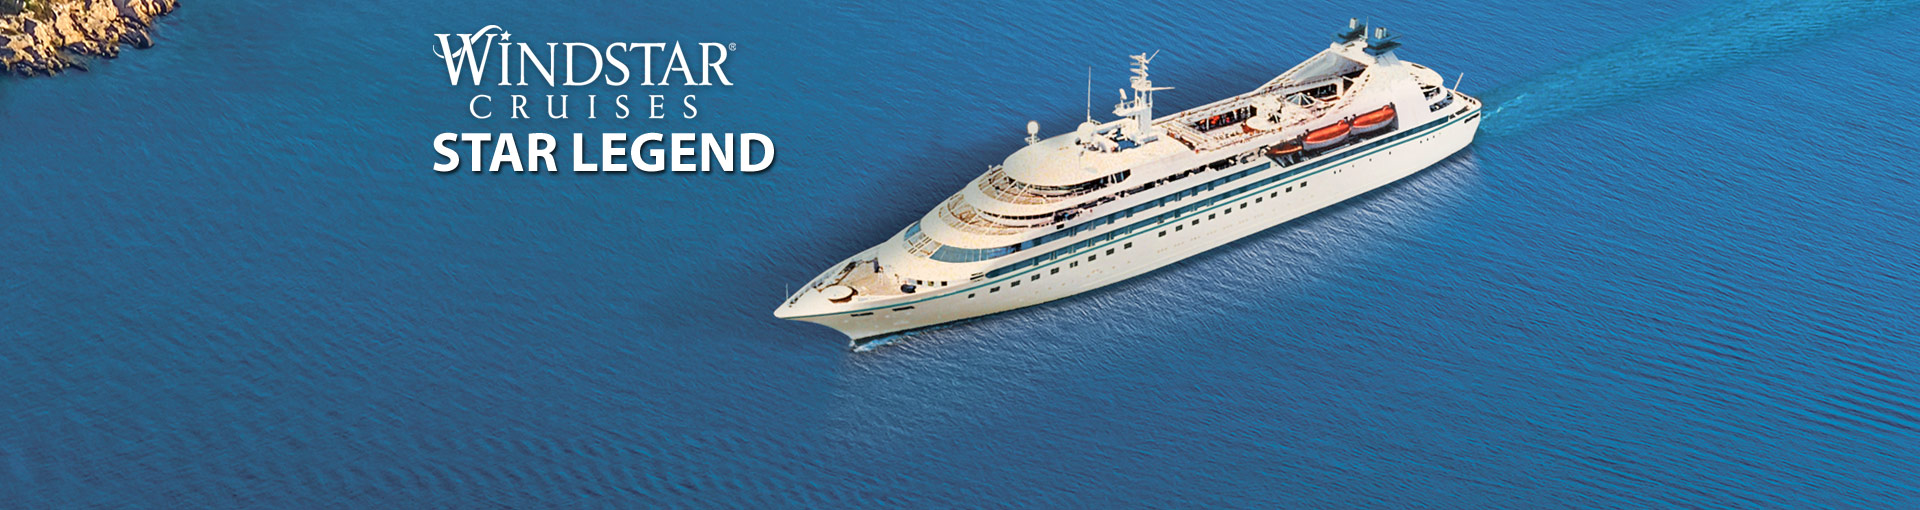 Windstar Cruises Star Legend Cruise Ship